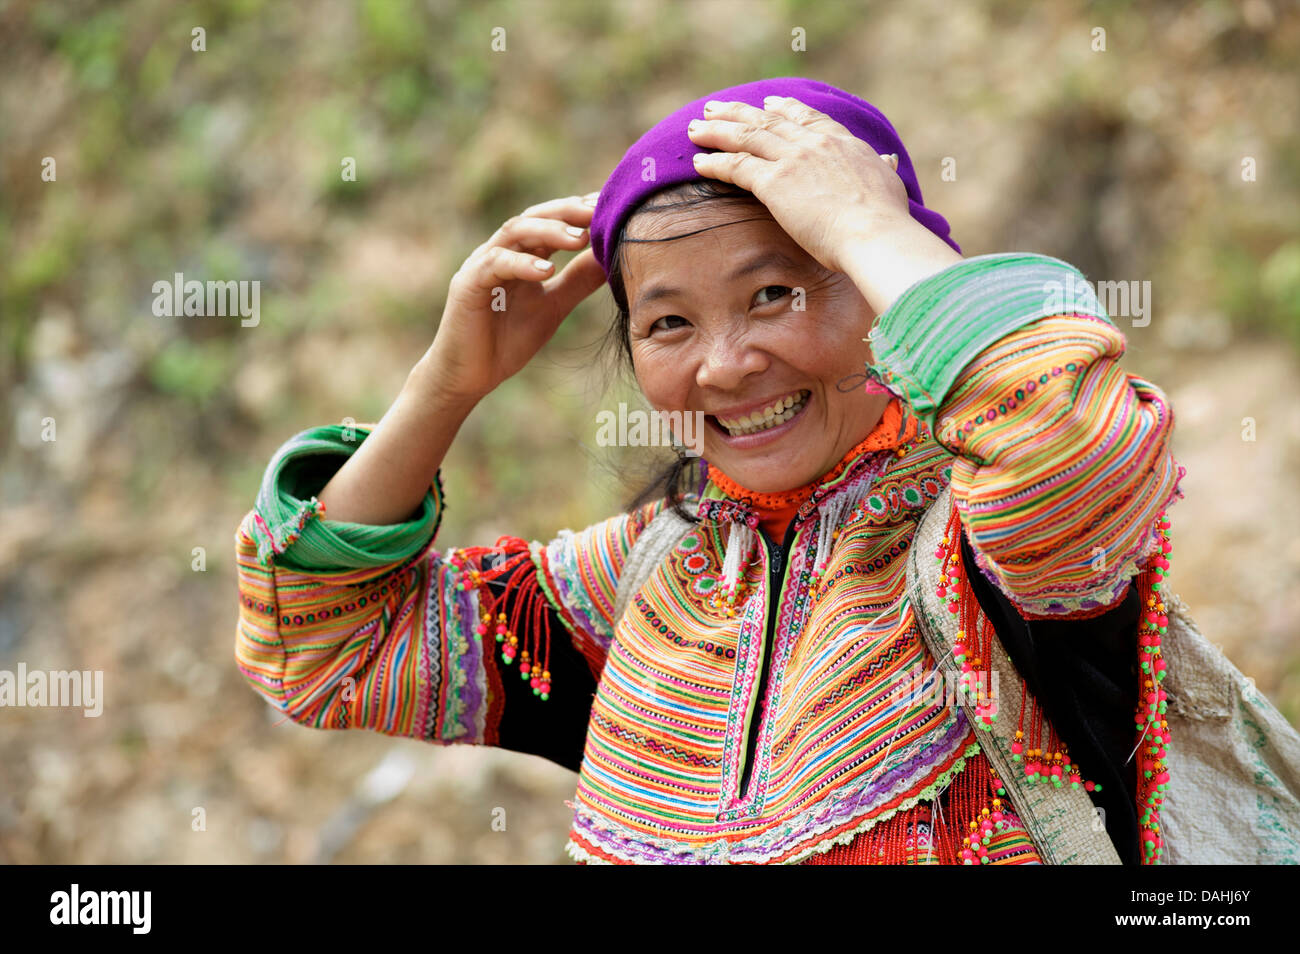 Potrait of a Flower Hmong woman in her brightly embroidered tribal costume, Coc Ly market, N Vietnam. Model Released - Stock Image